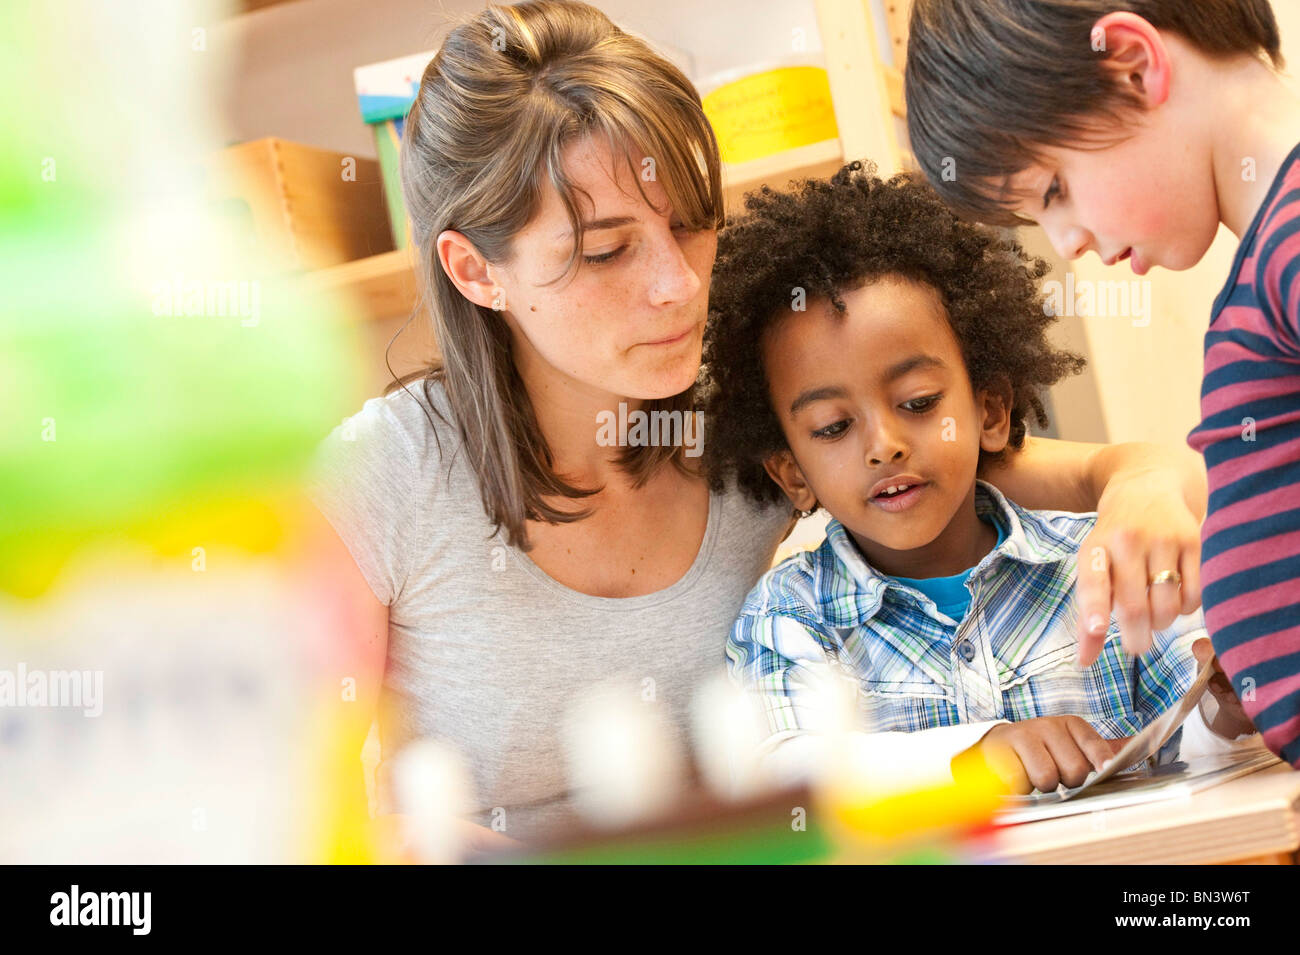 Kindergarten teacher and children looking at book, low angle view Stock Photo